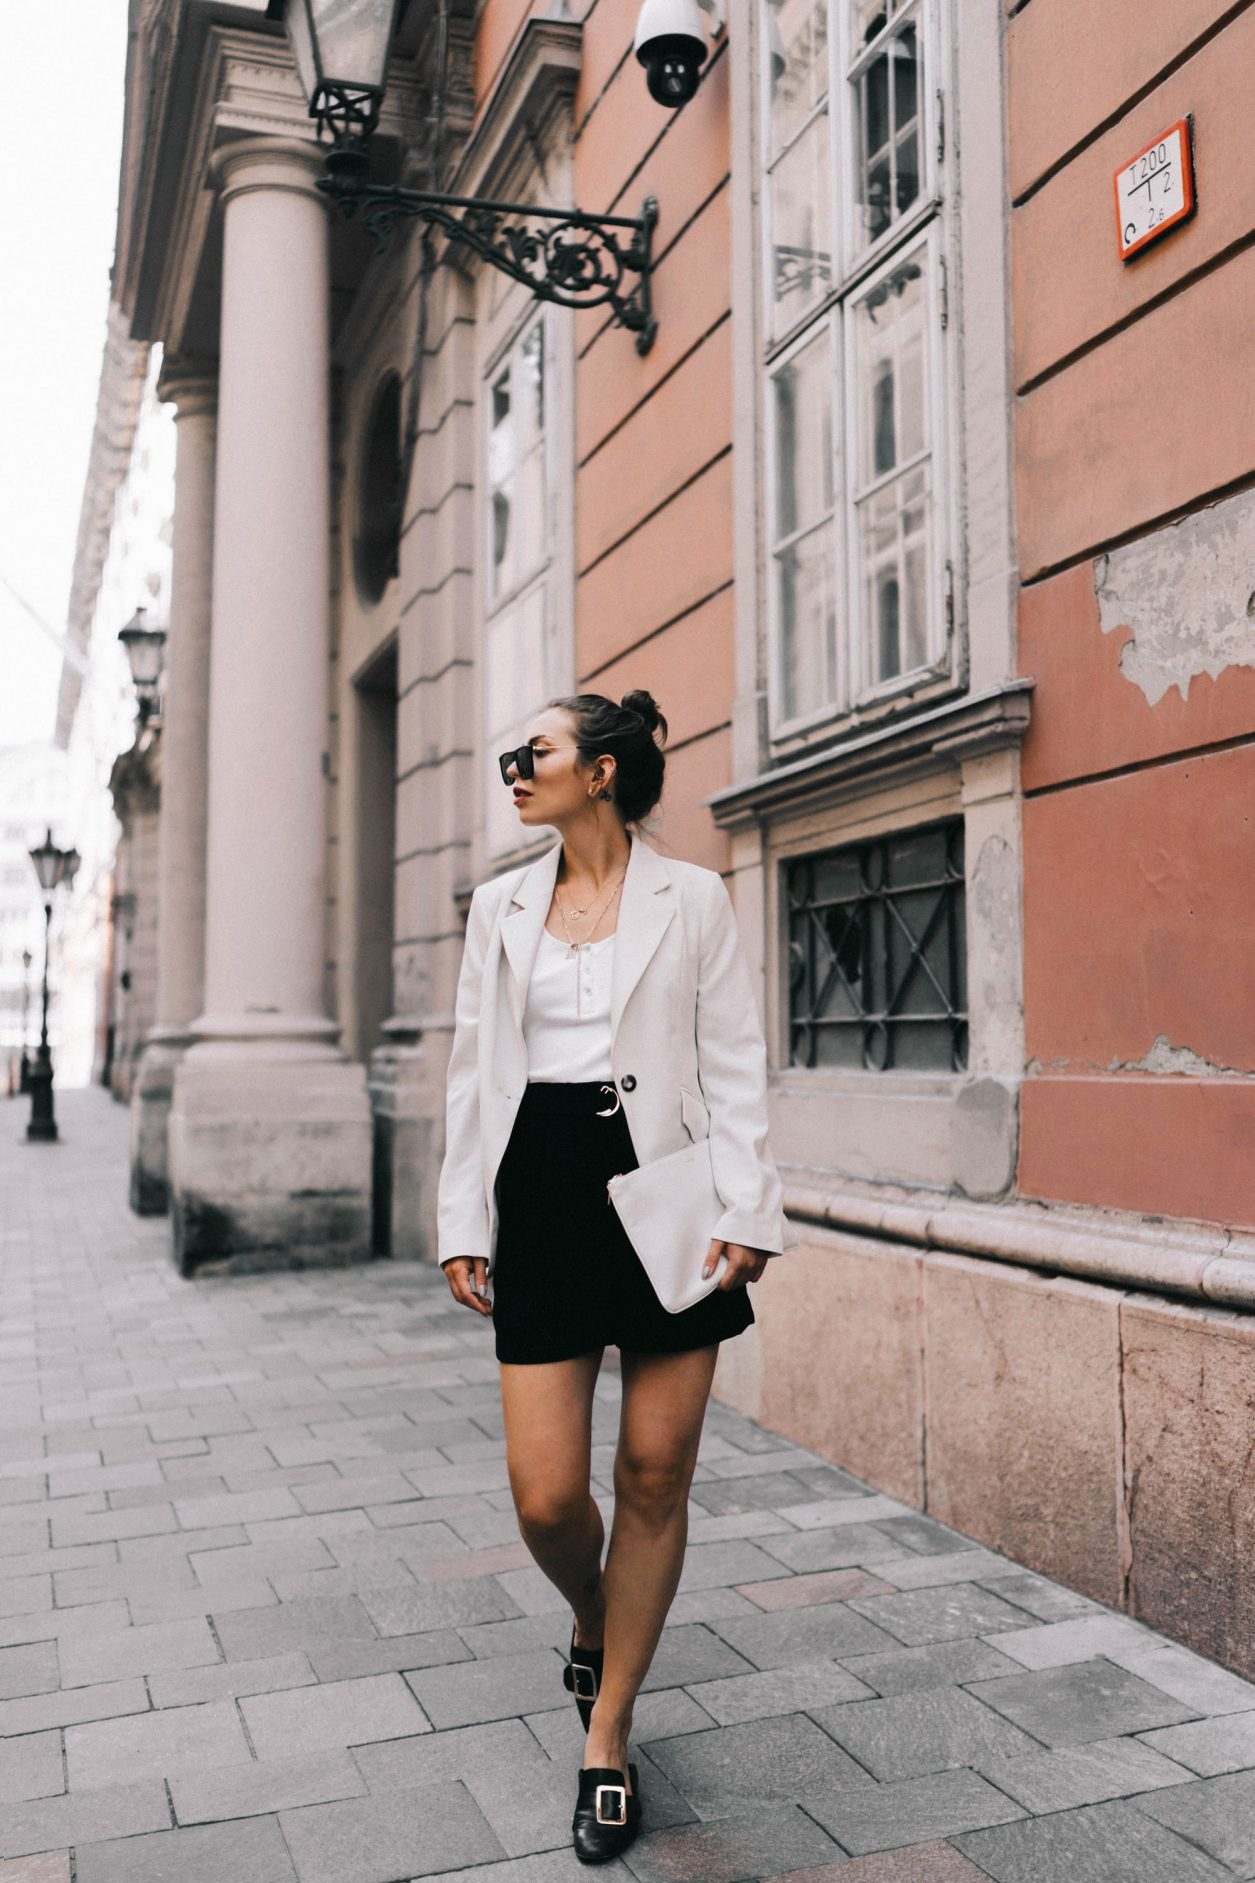 A summer business look for women, Streetstyle from Budapest, Hungary Blazer: Baum und Pferdgarten Top: Gestuz Shorts: H&M Sunnies: Polaroid Loafer: Bally Clutch: Jil Sander